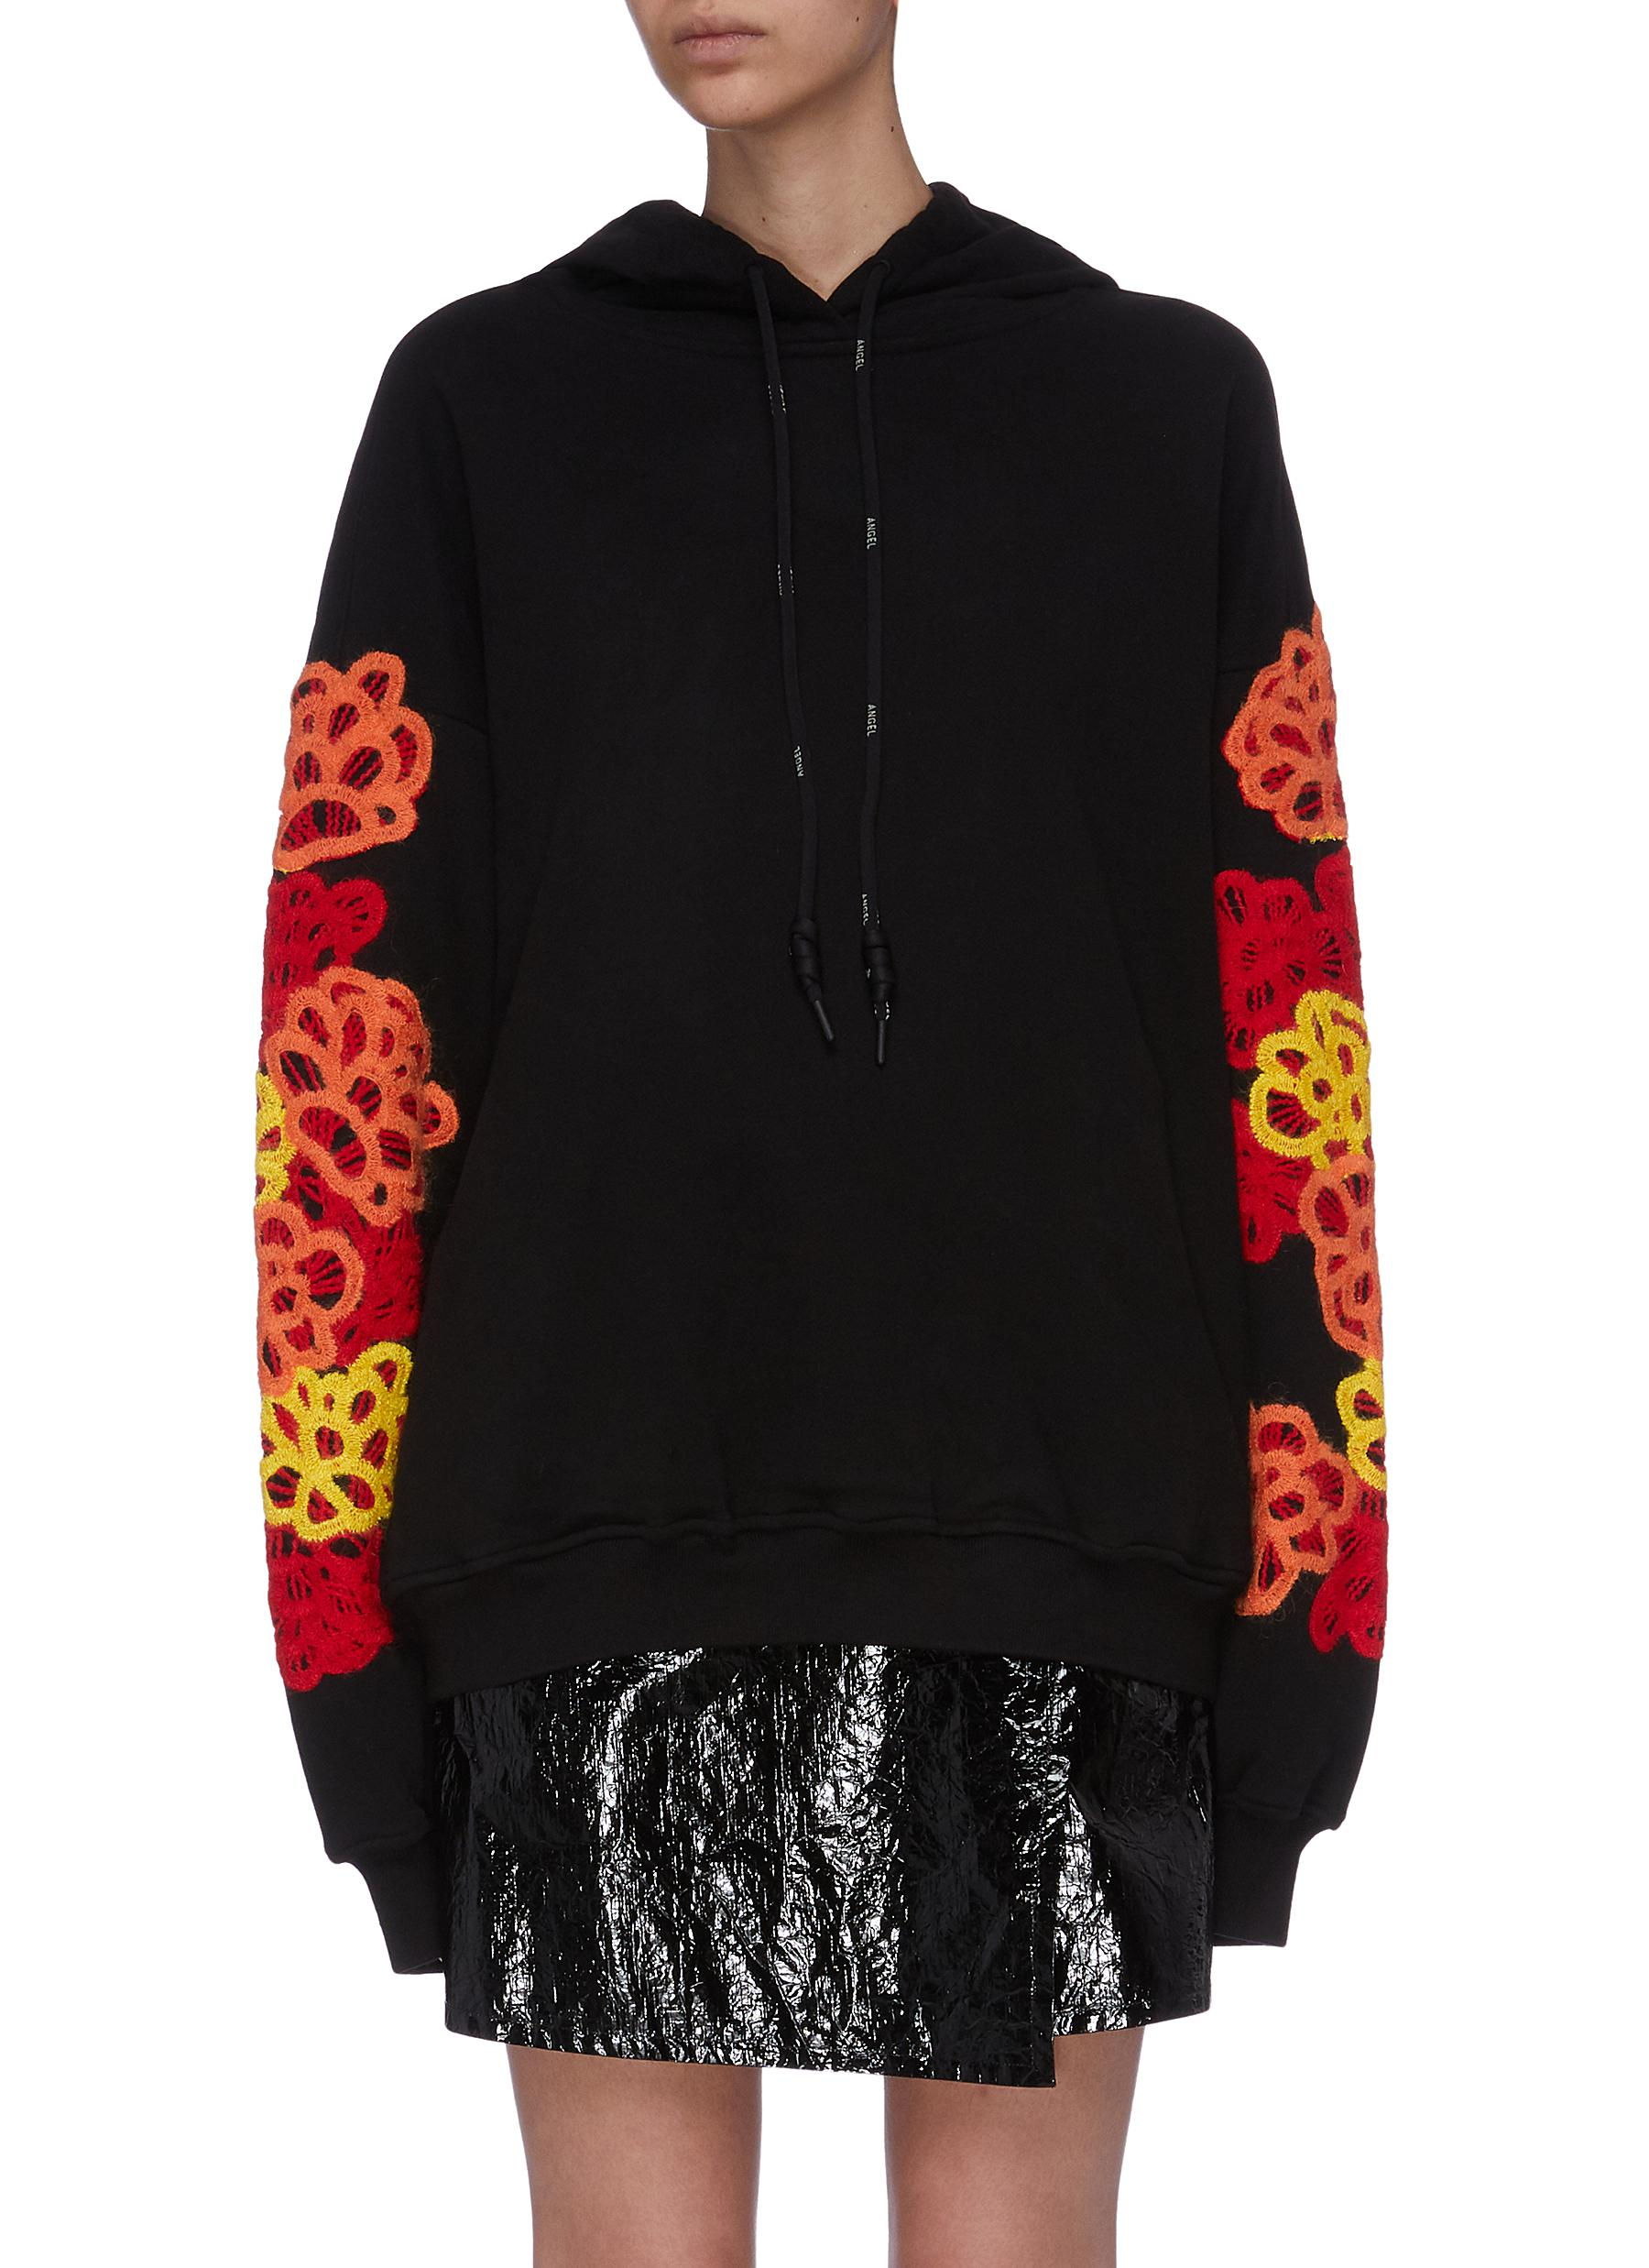 Floral appliqué sleeve hoodie by Angel Chen